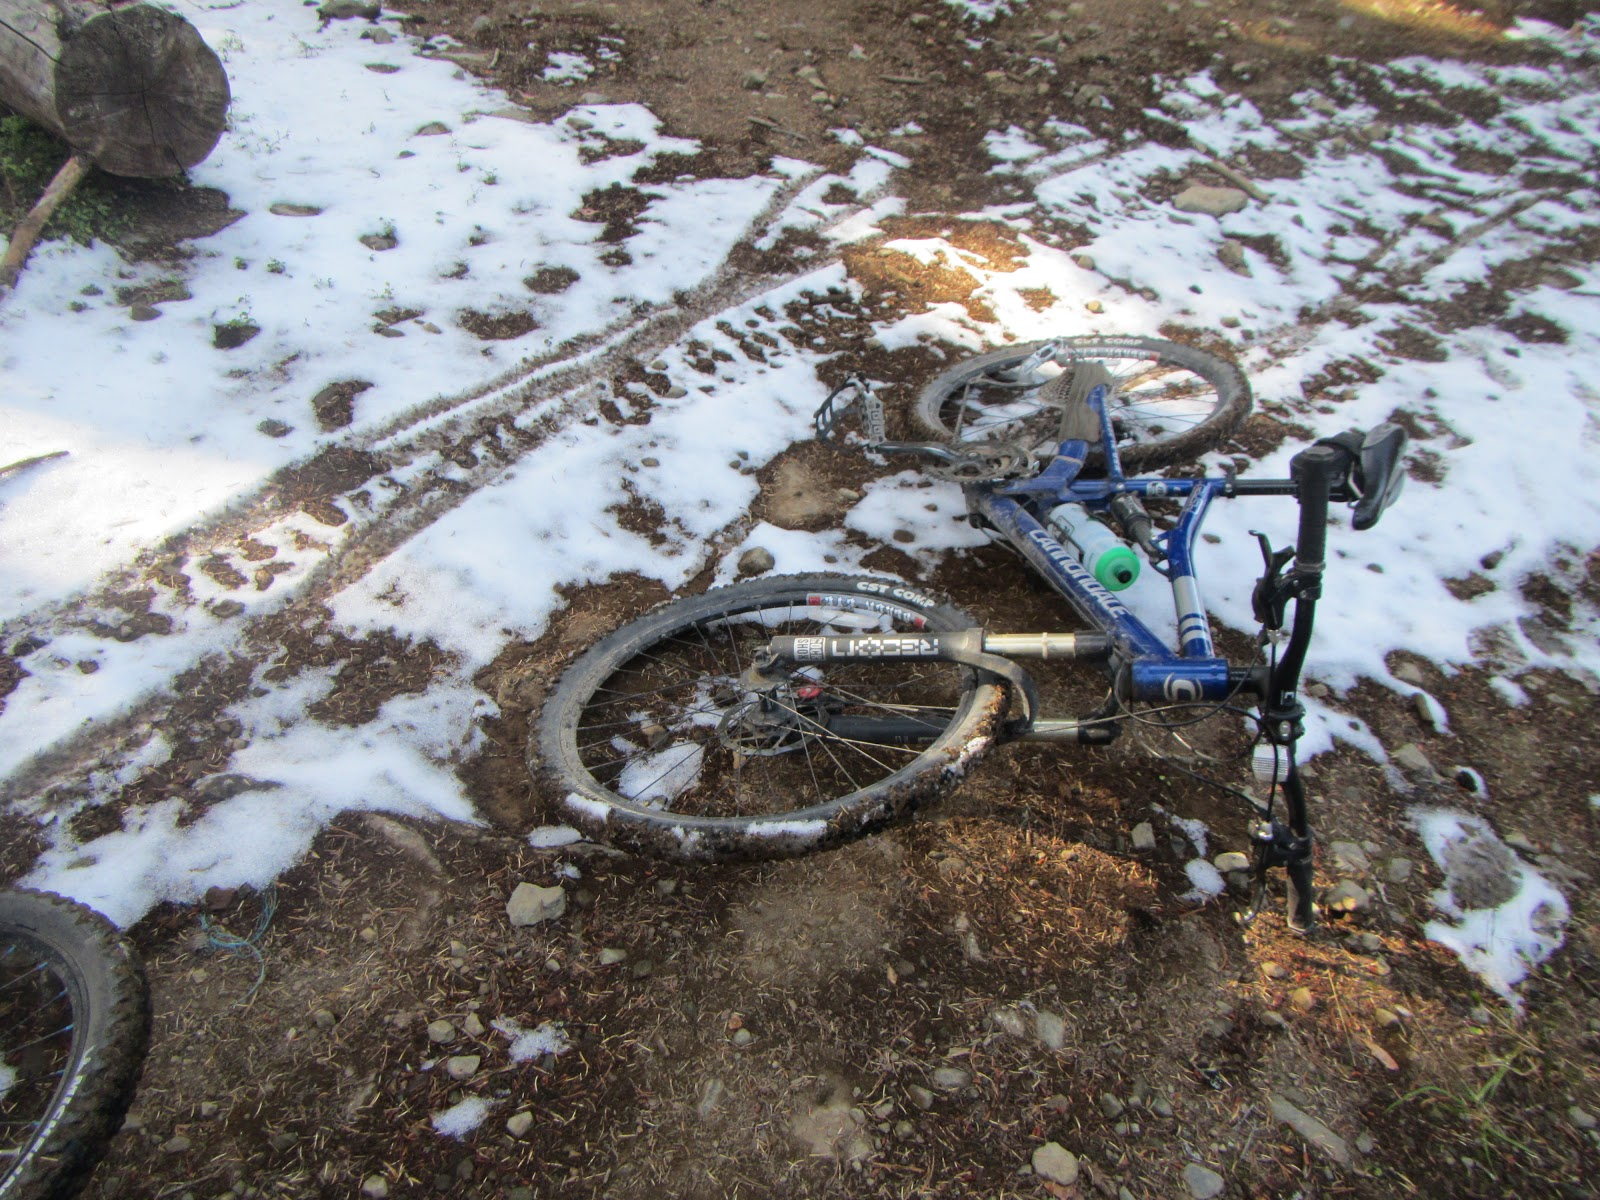 Brian's Bike Buzz: Bussard Mountain Trail